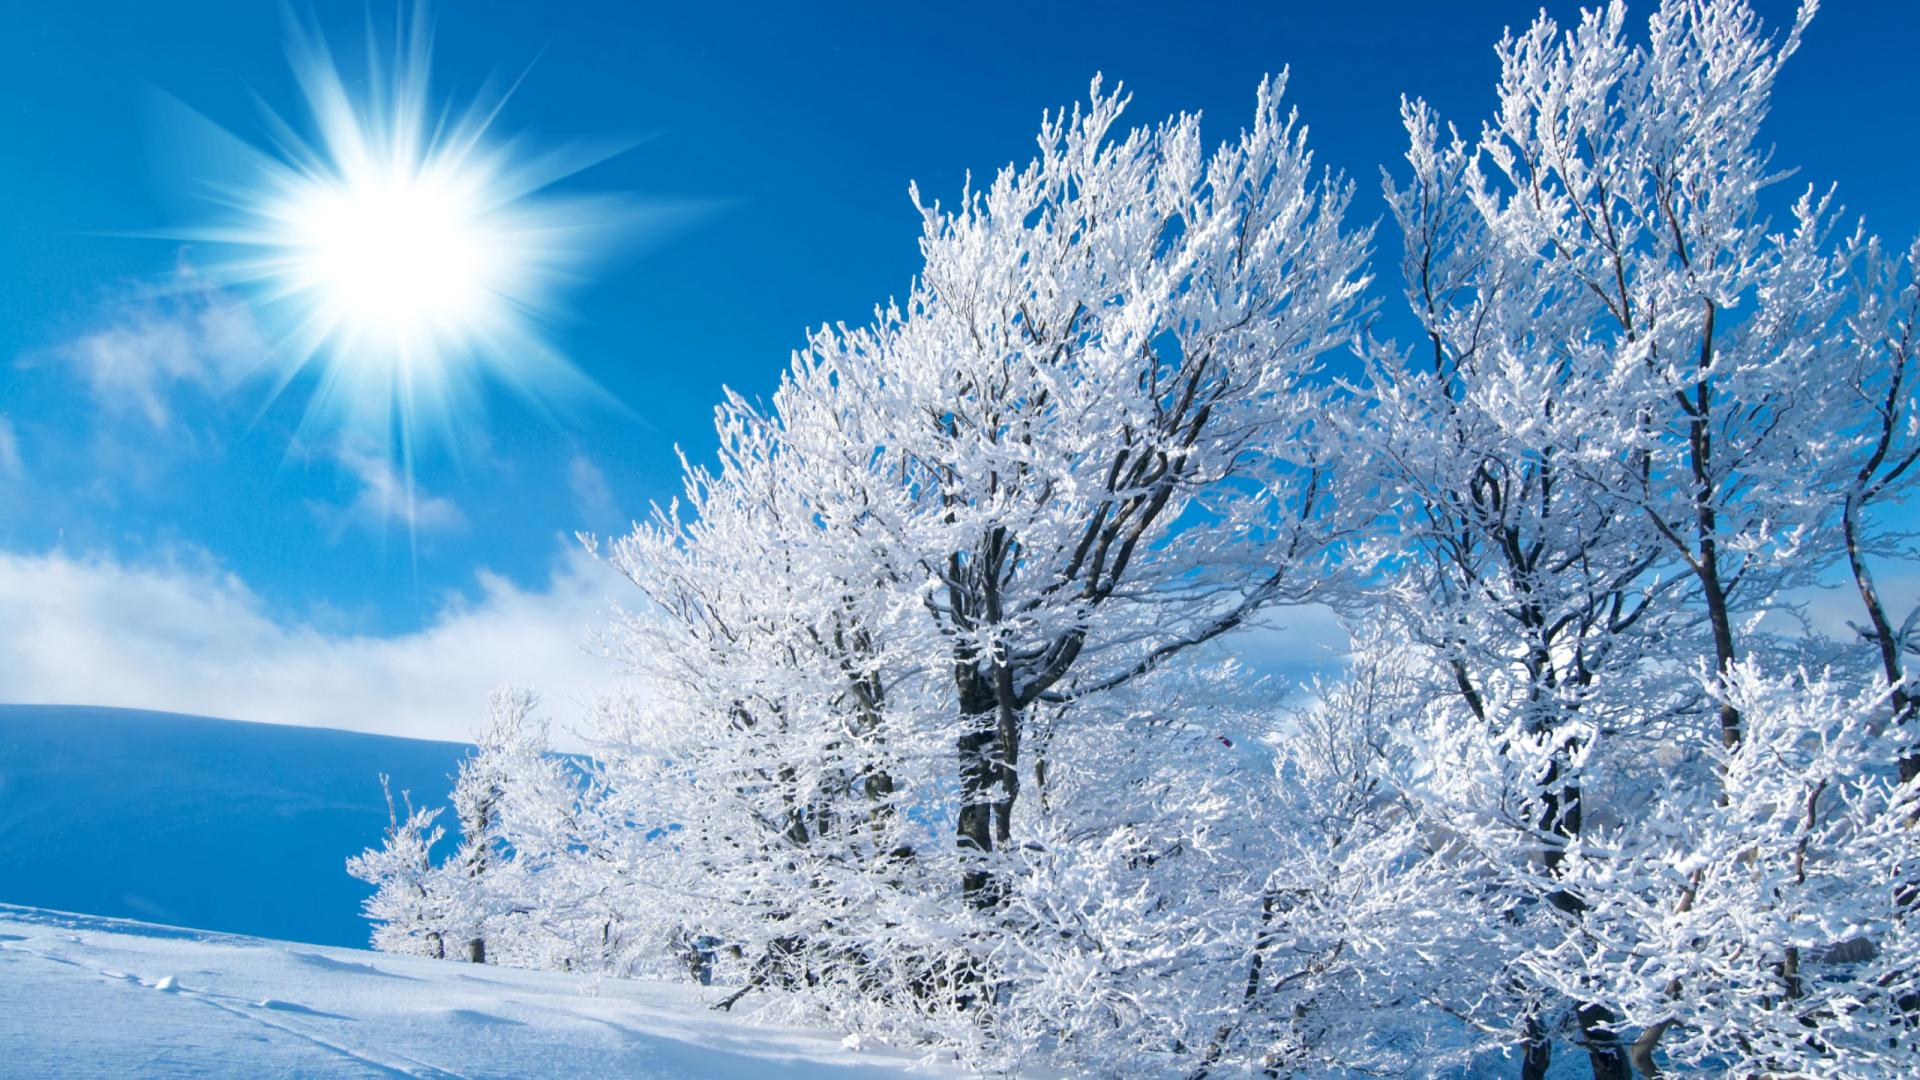 Winter Backgrounds Wallpapers WallpapersCharlie 1920x1080